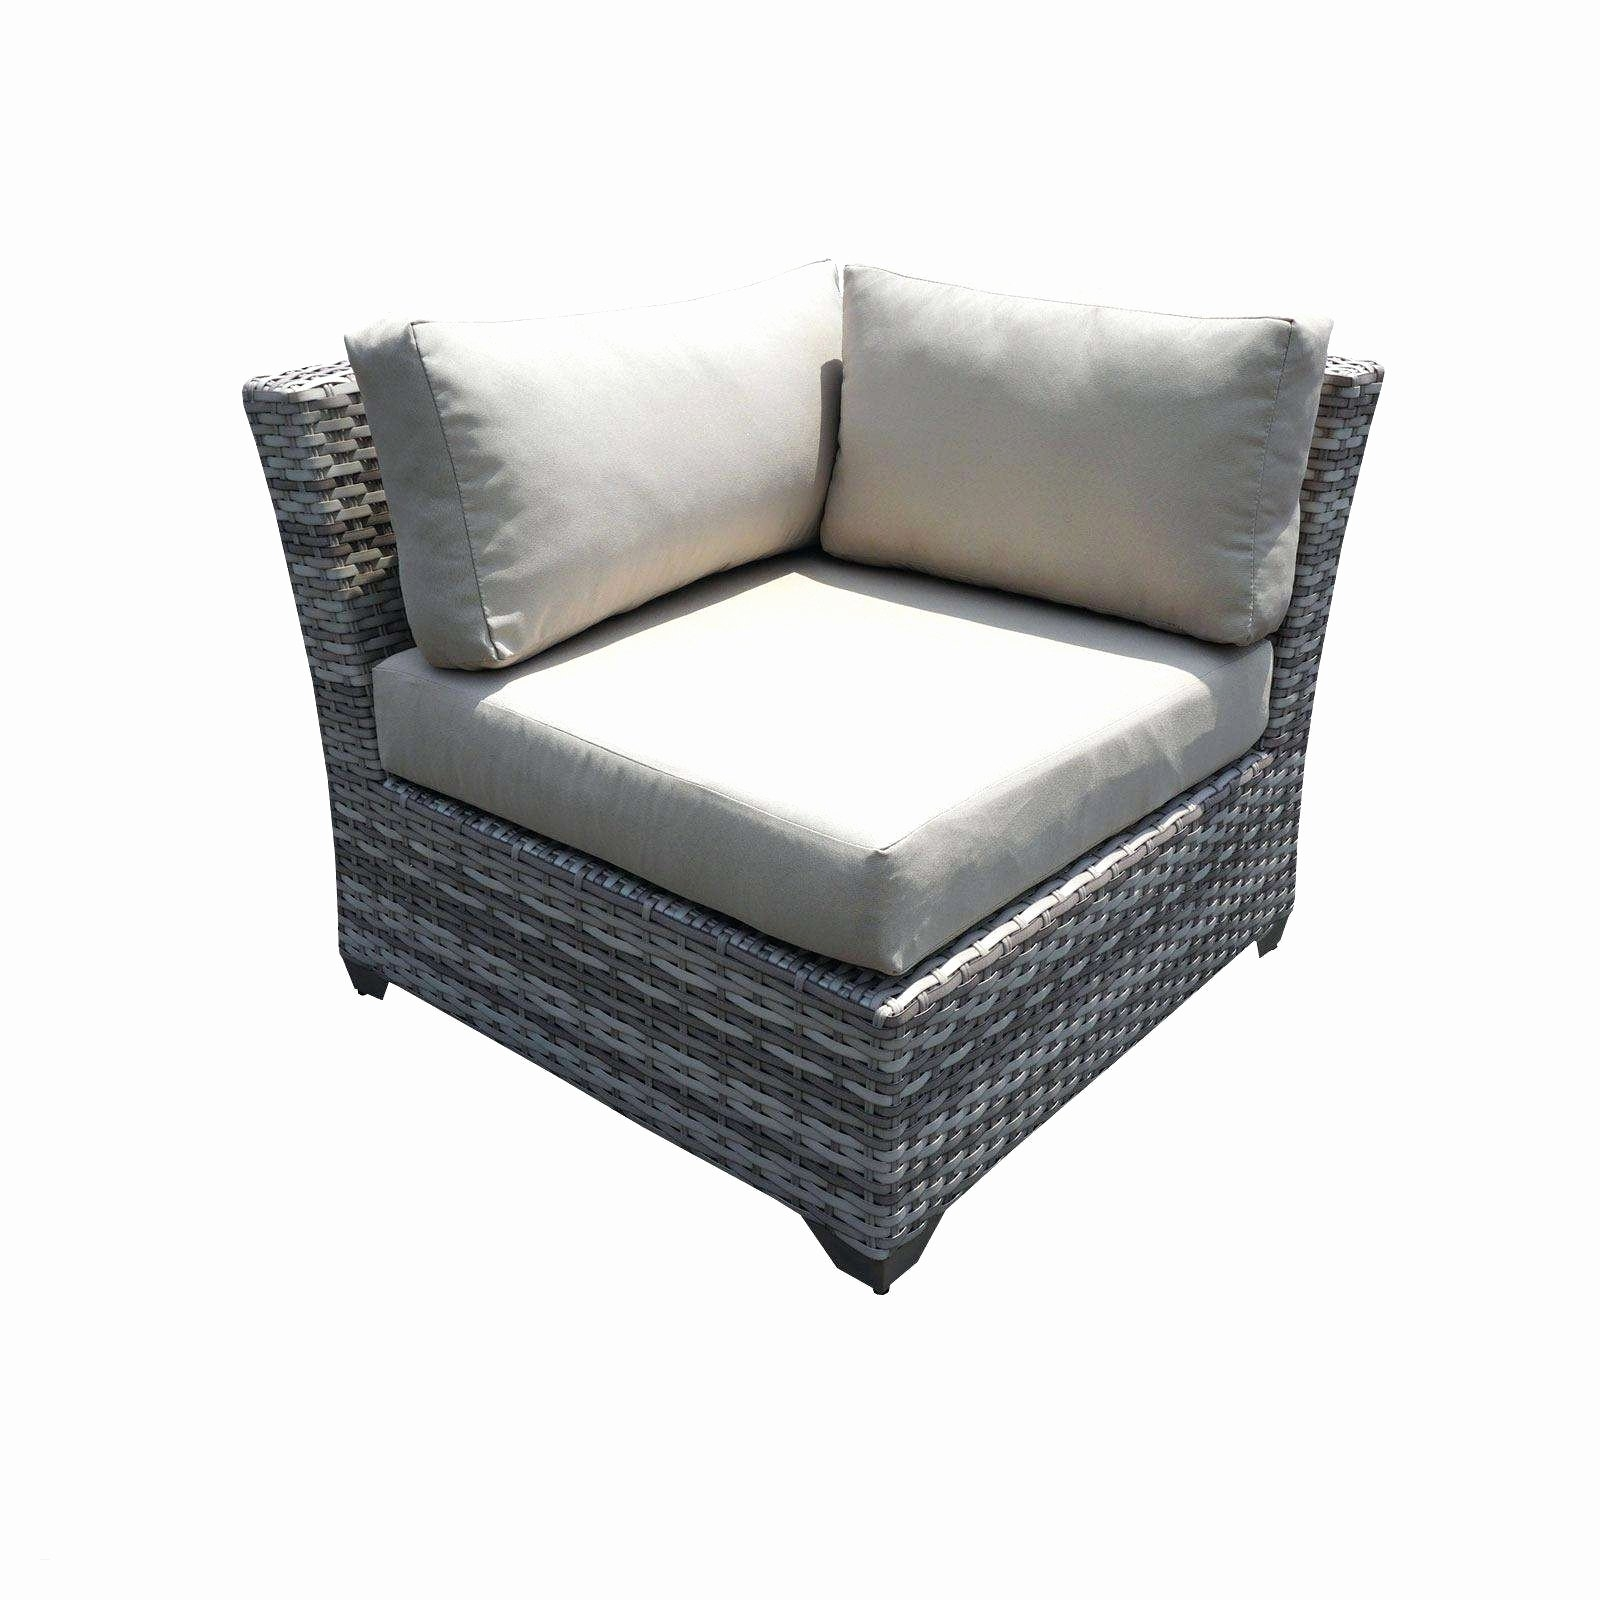 Simple 25 2 Piece Sectionals With Chaise Awesome | Russiandesignshow Intended For Aquarius Dark Grey 2 Piece Sectionals With Raf Chaise (View 21 of 25)